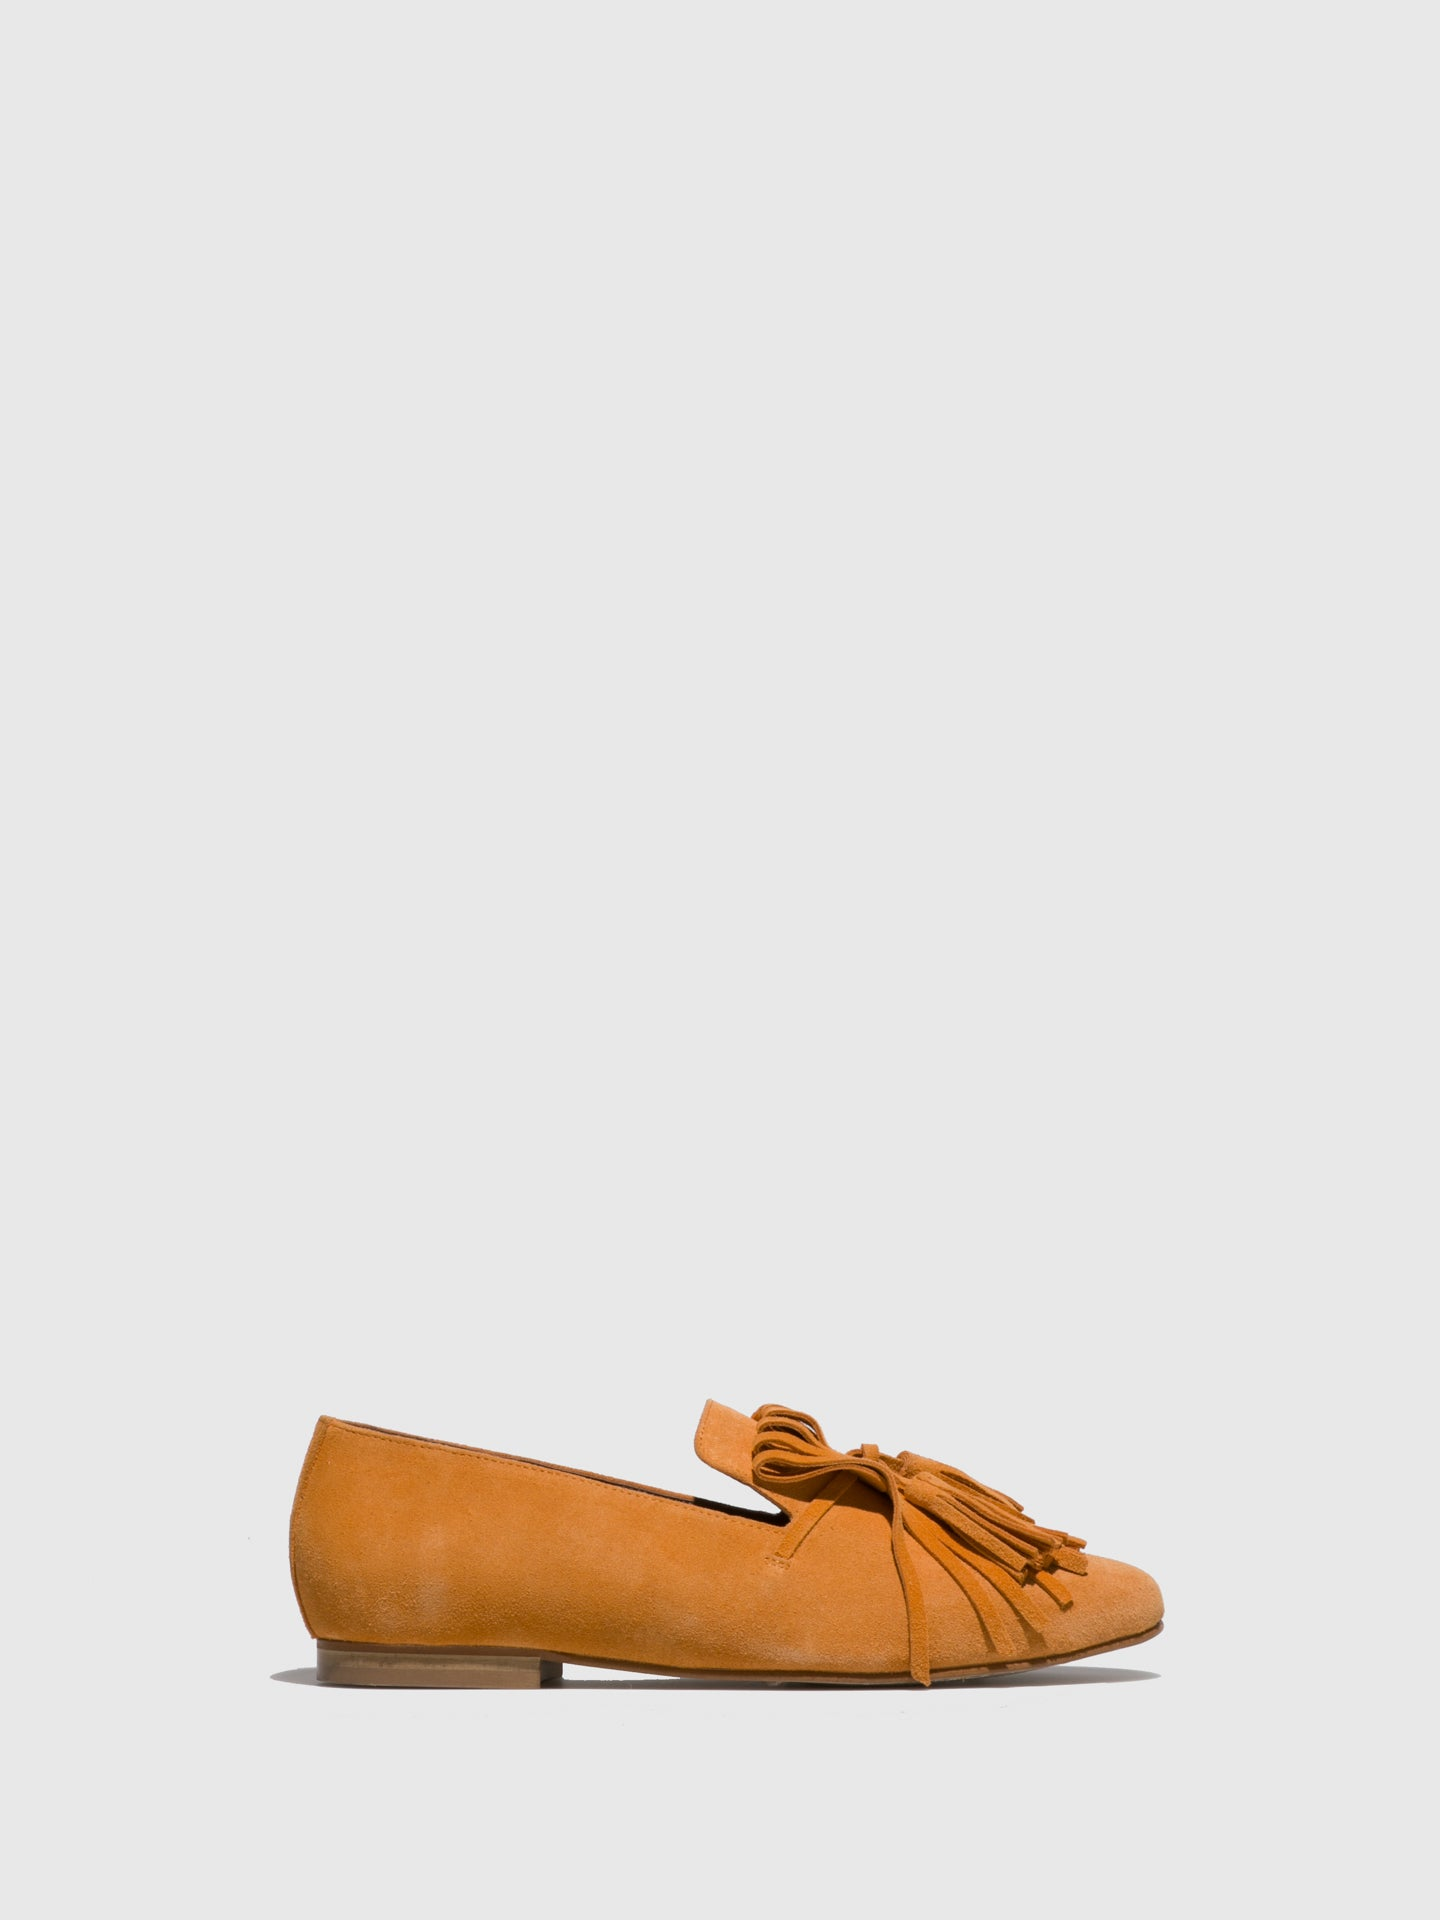 JJ Heitor Orange Suede Loafers Shoes